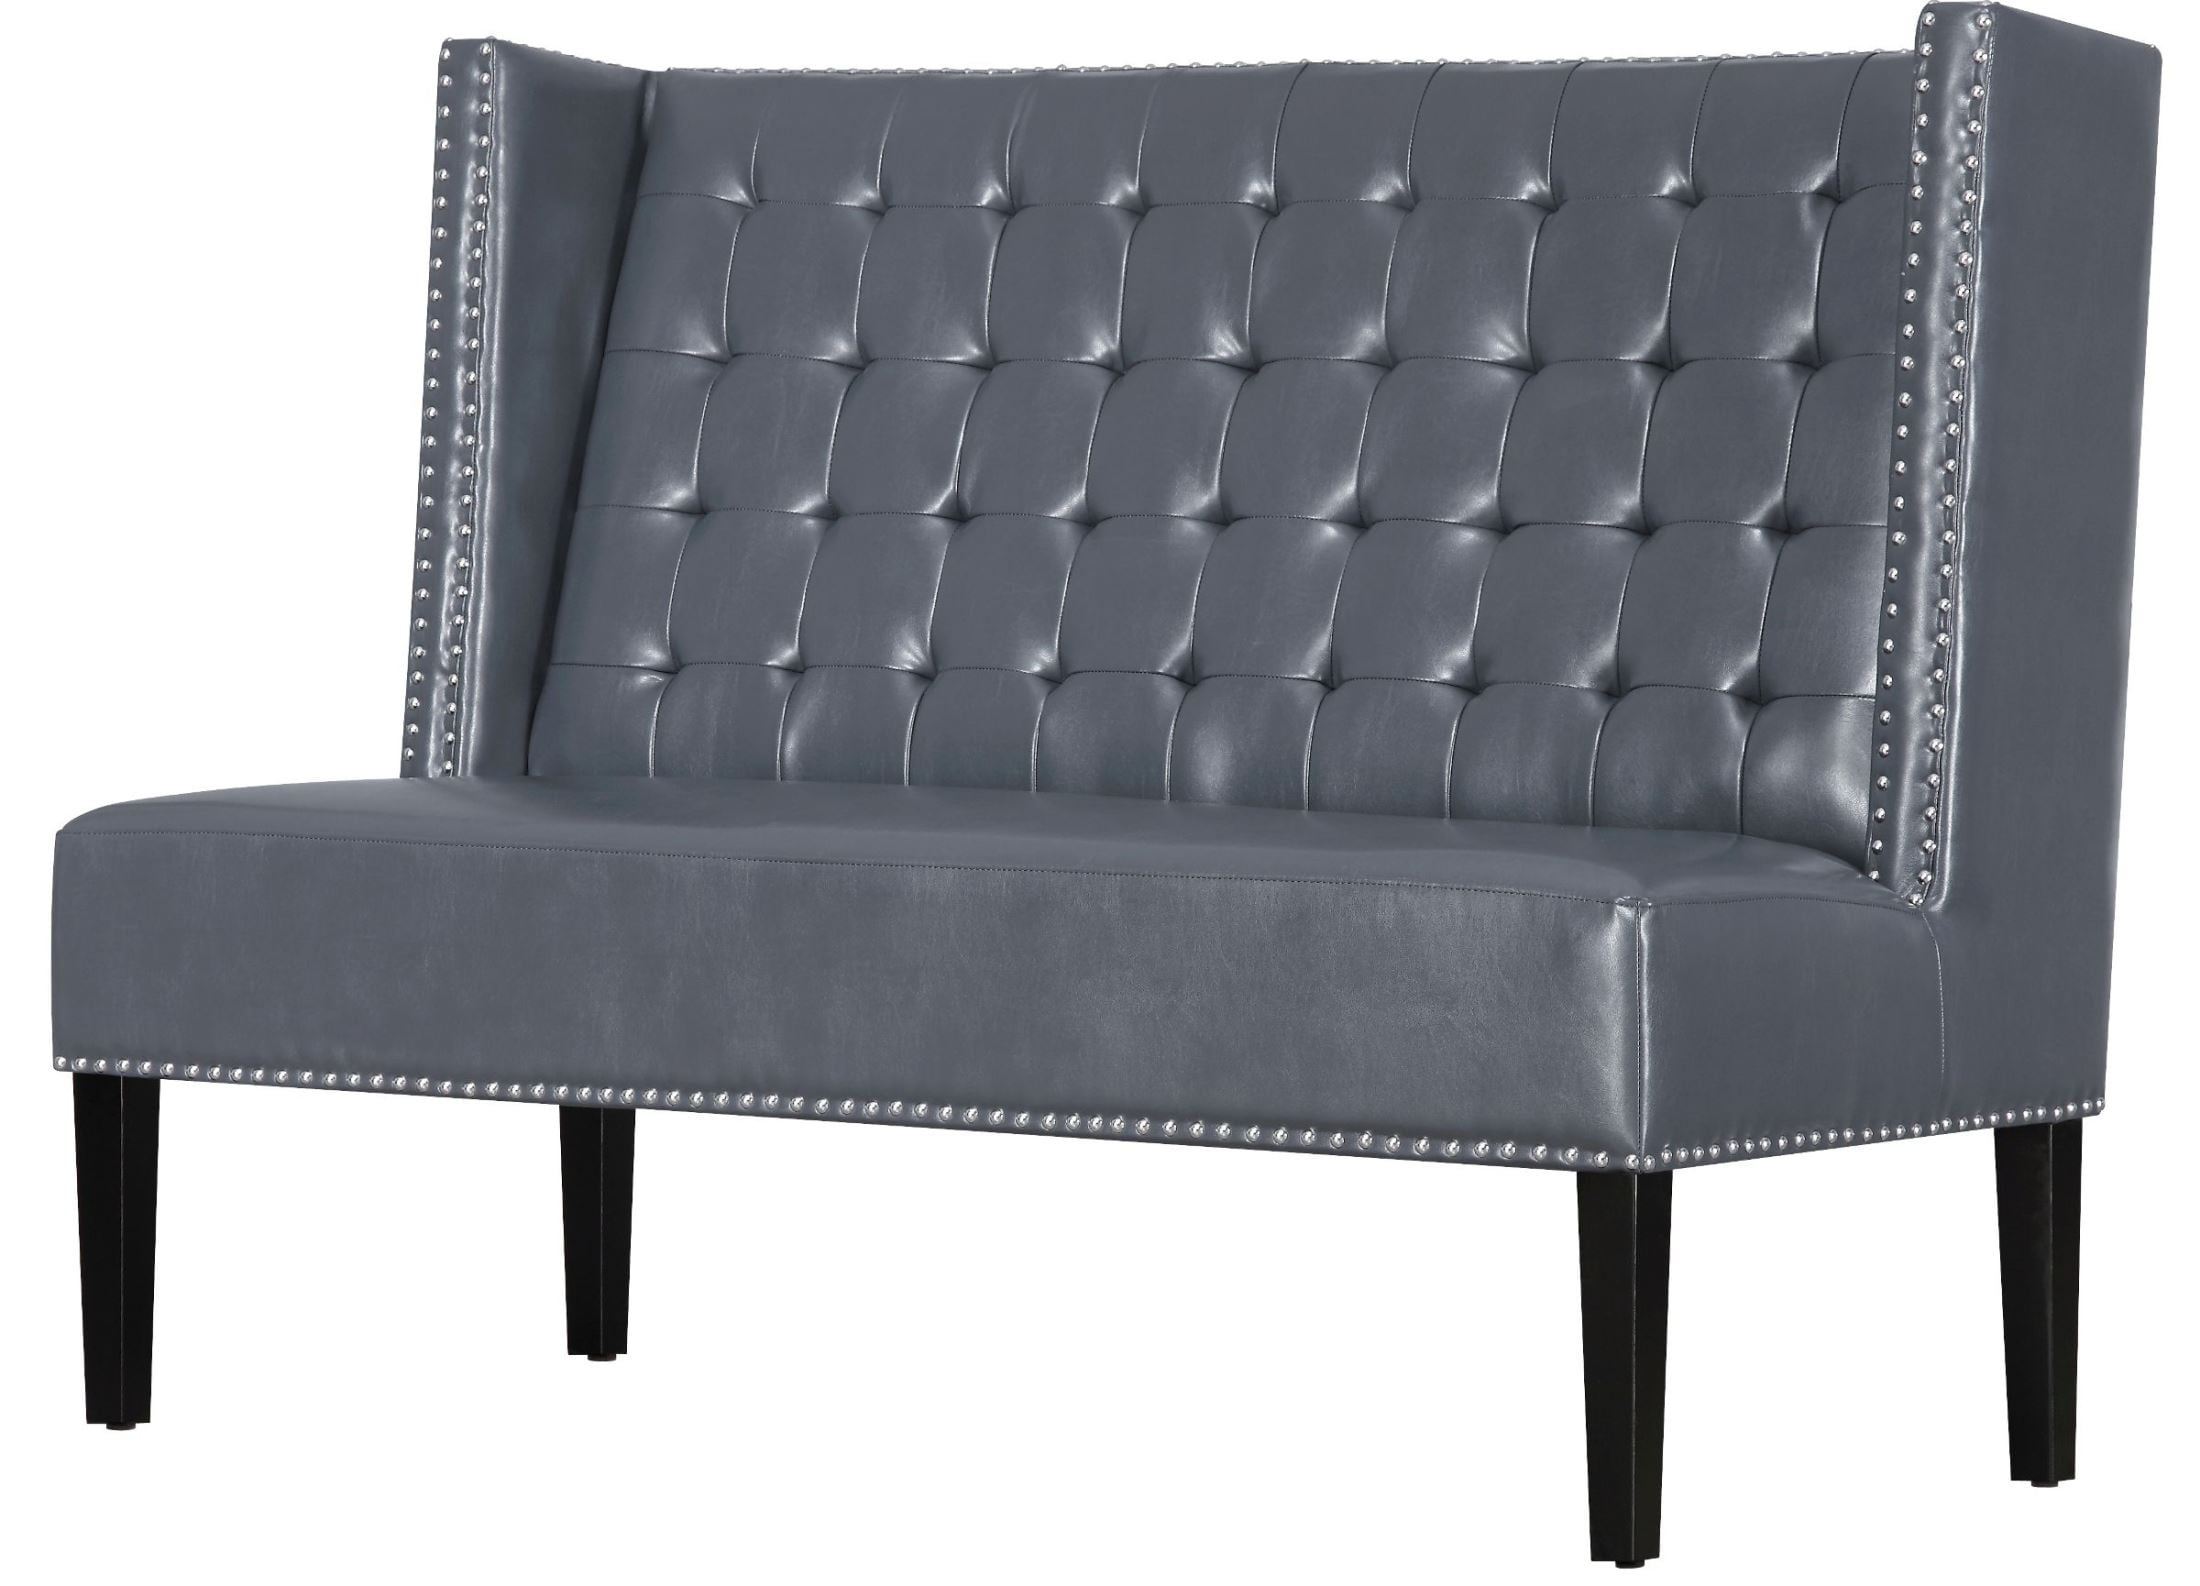 Halifax gray leather banquette bench from tov 63116 gray Banquette bench